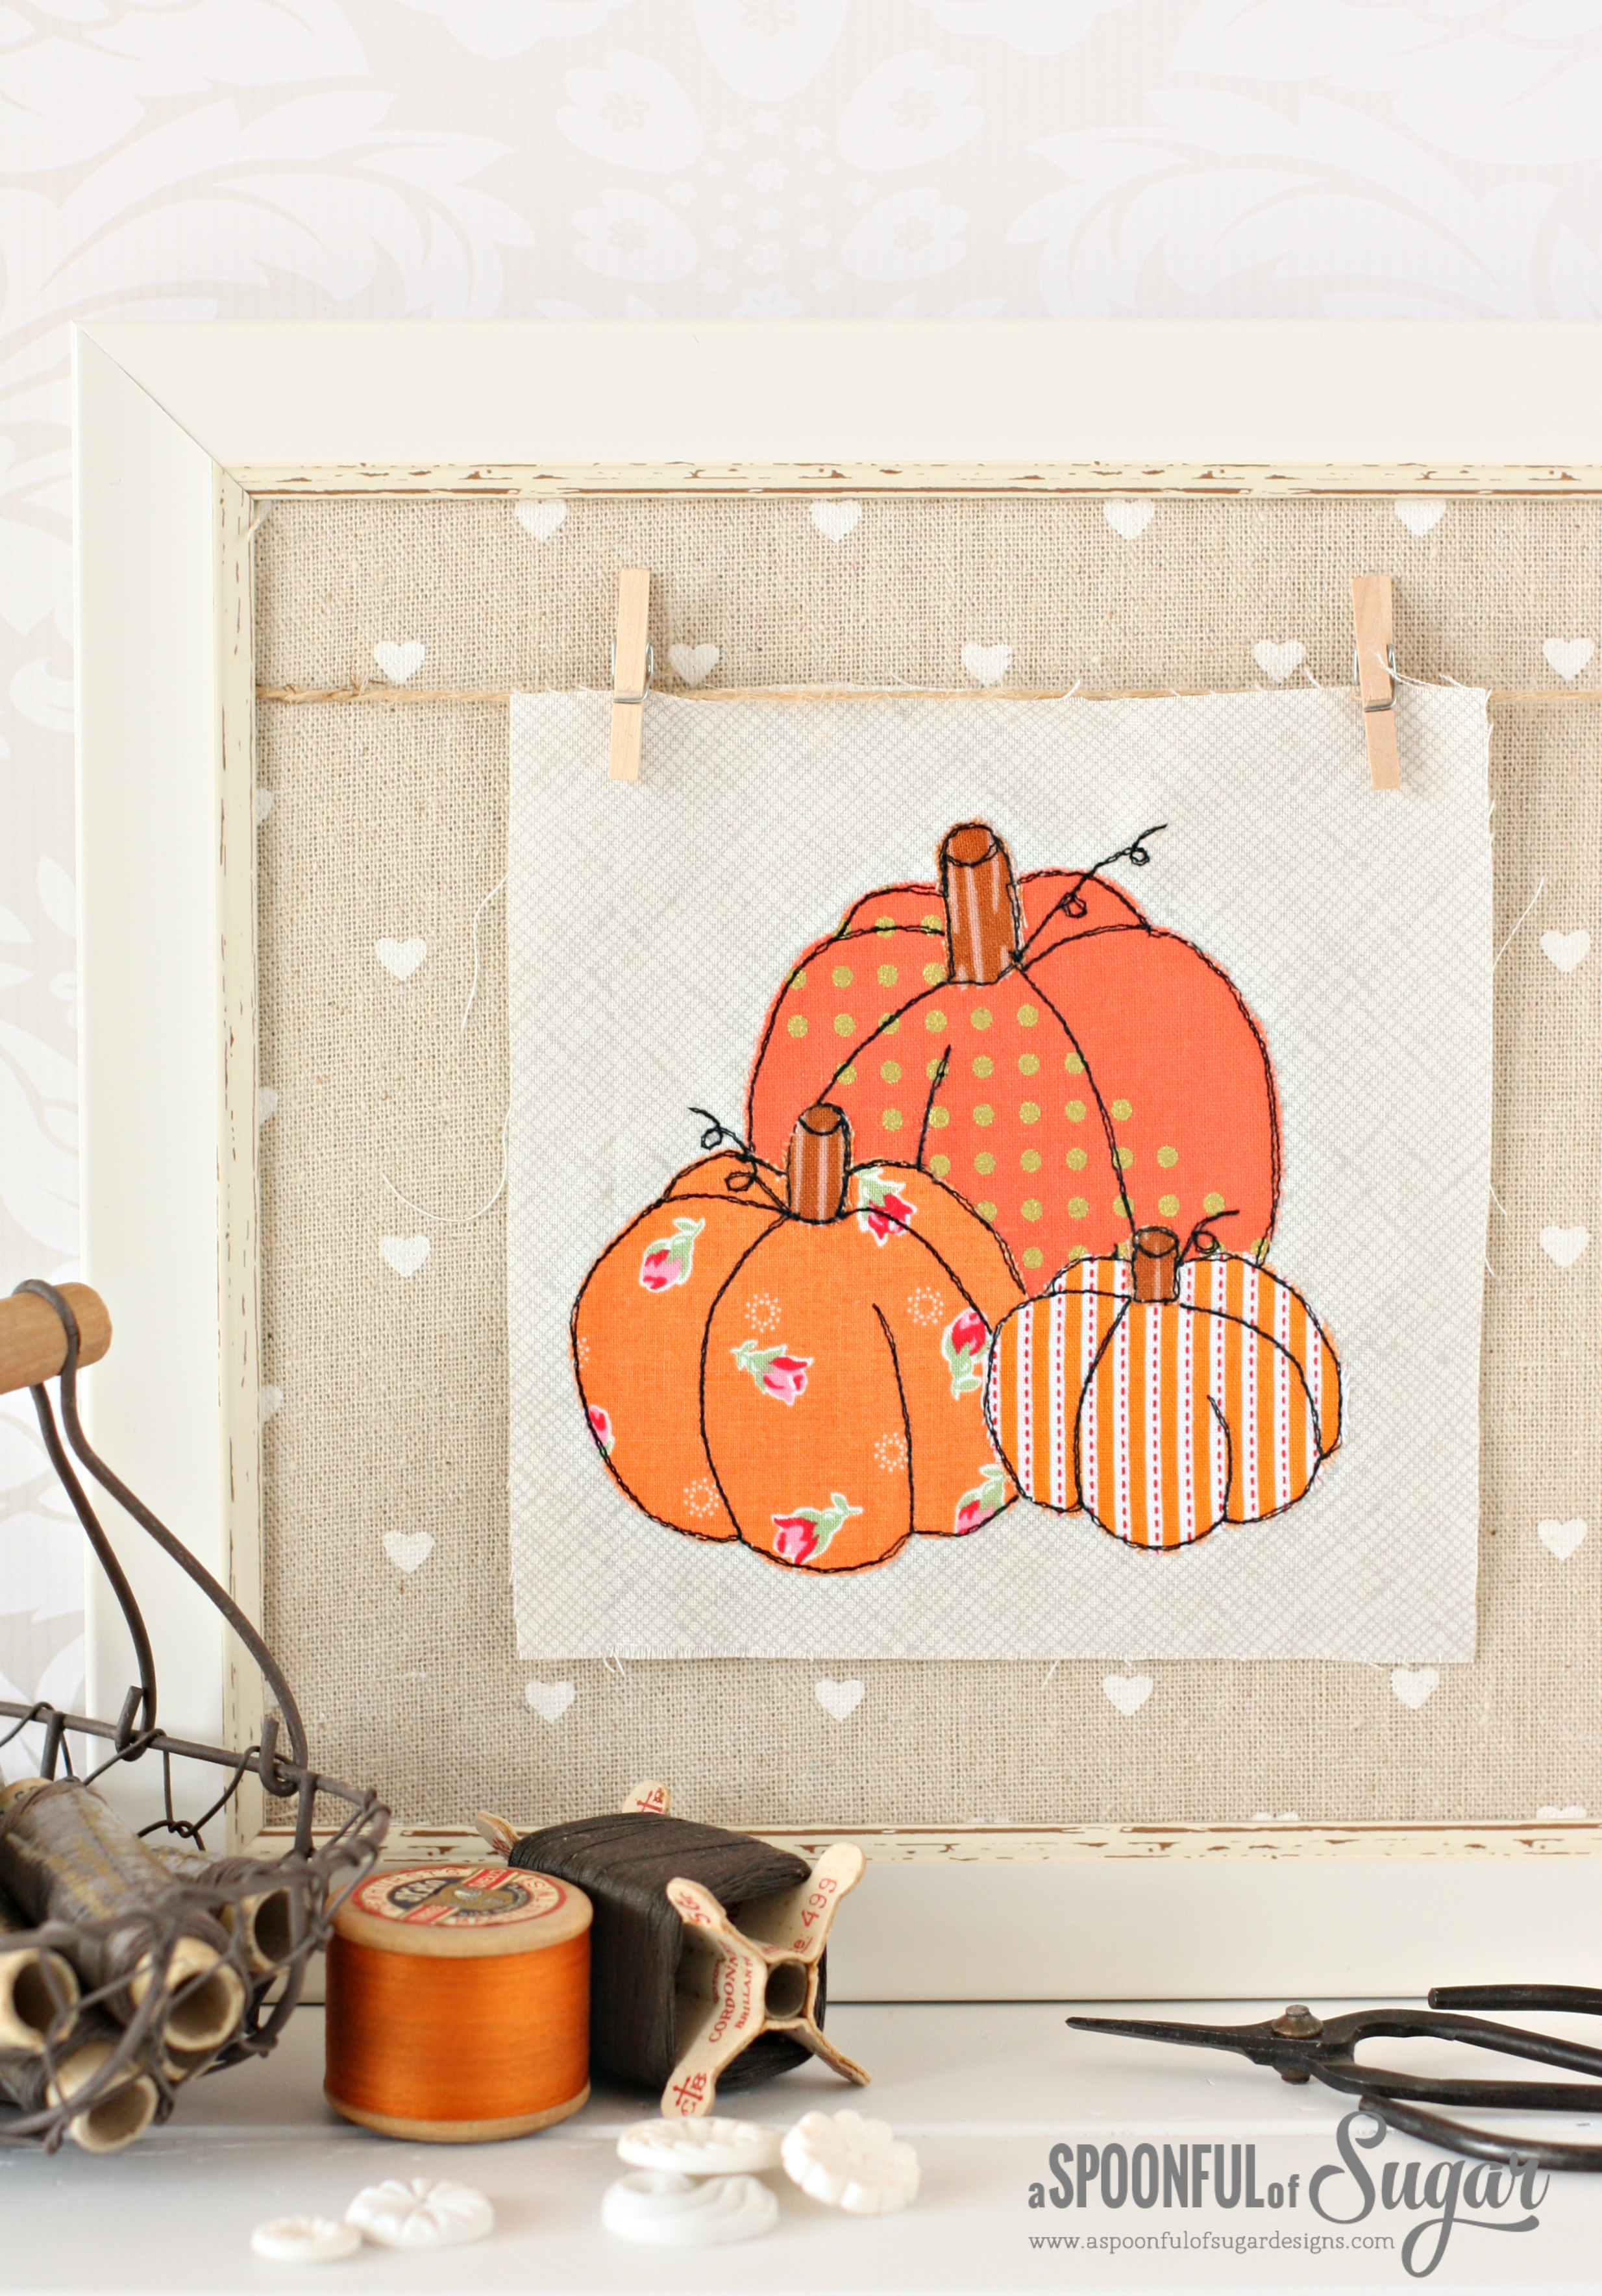 Pumpkin Patch Halloween Applique is a free project from A Spoonful of Sugar www.aspoonfulofsugardesigns.com